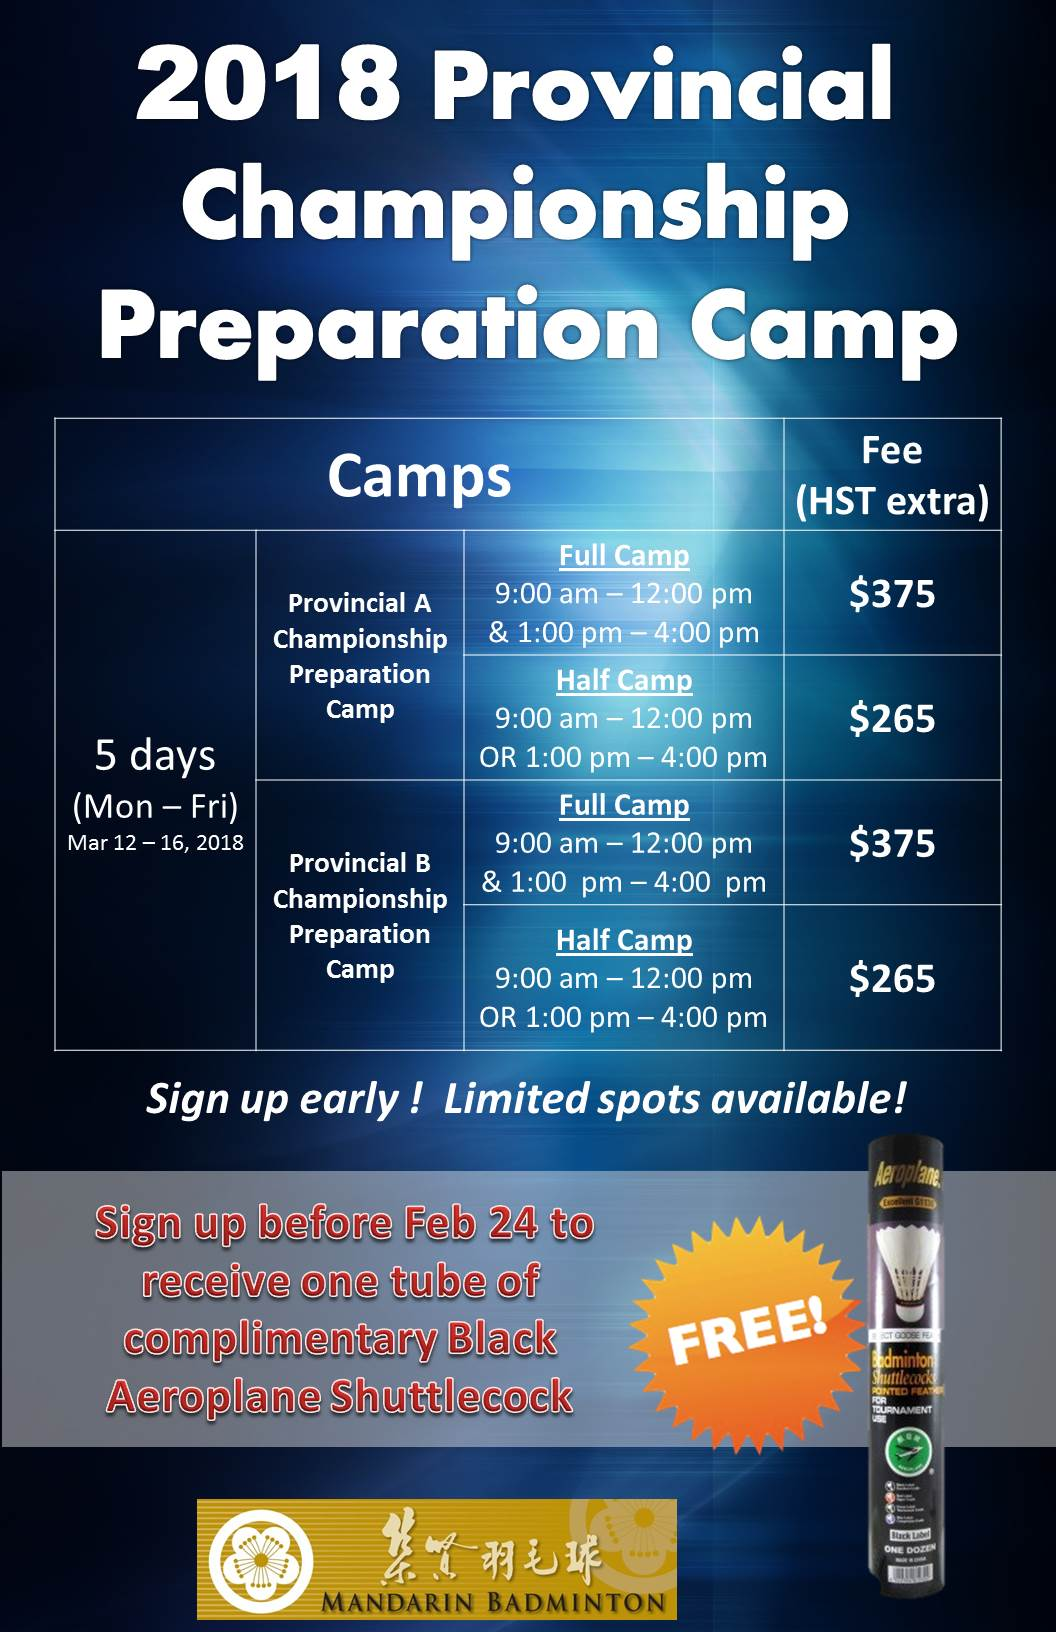 2018 Provincial Championship Preparation Camp updated Feb 6